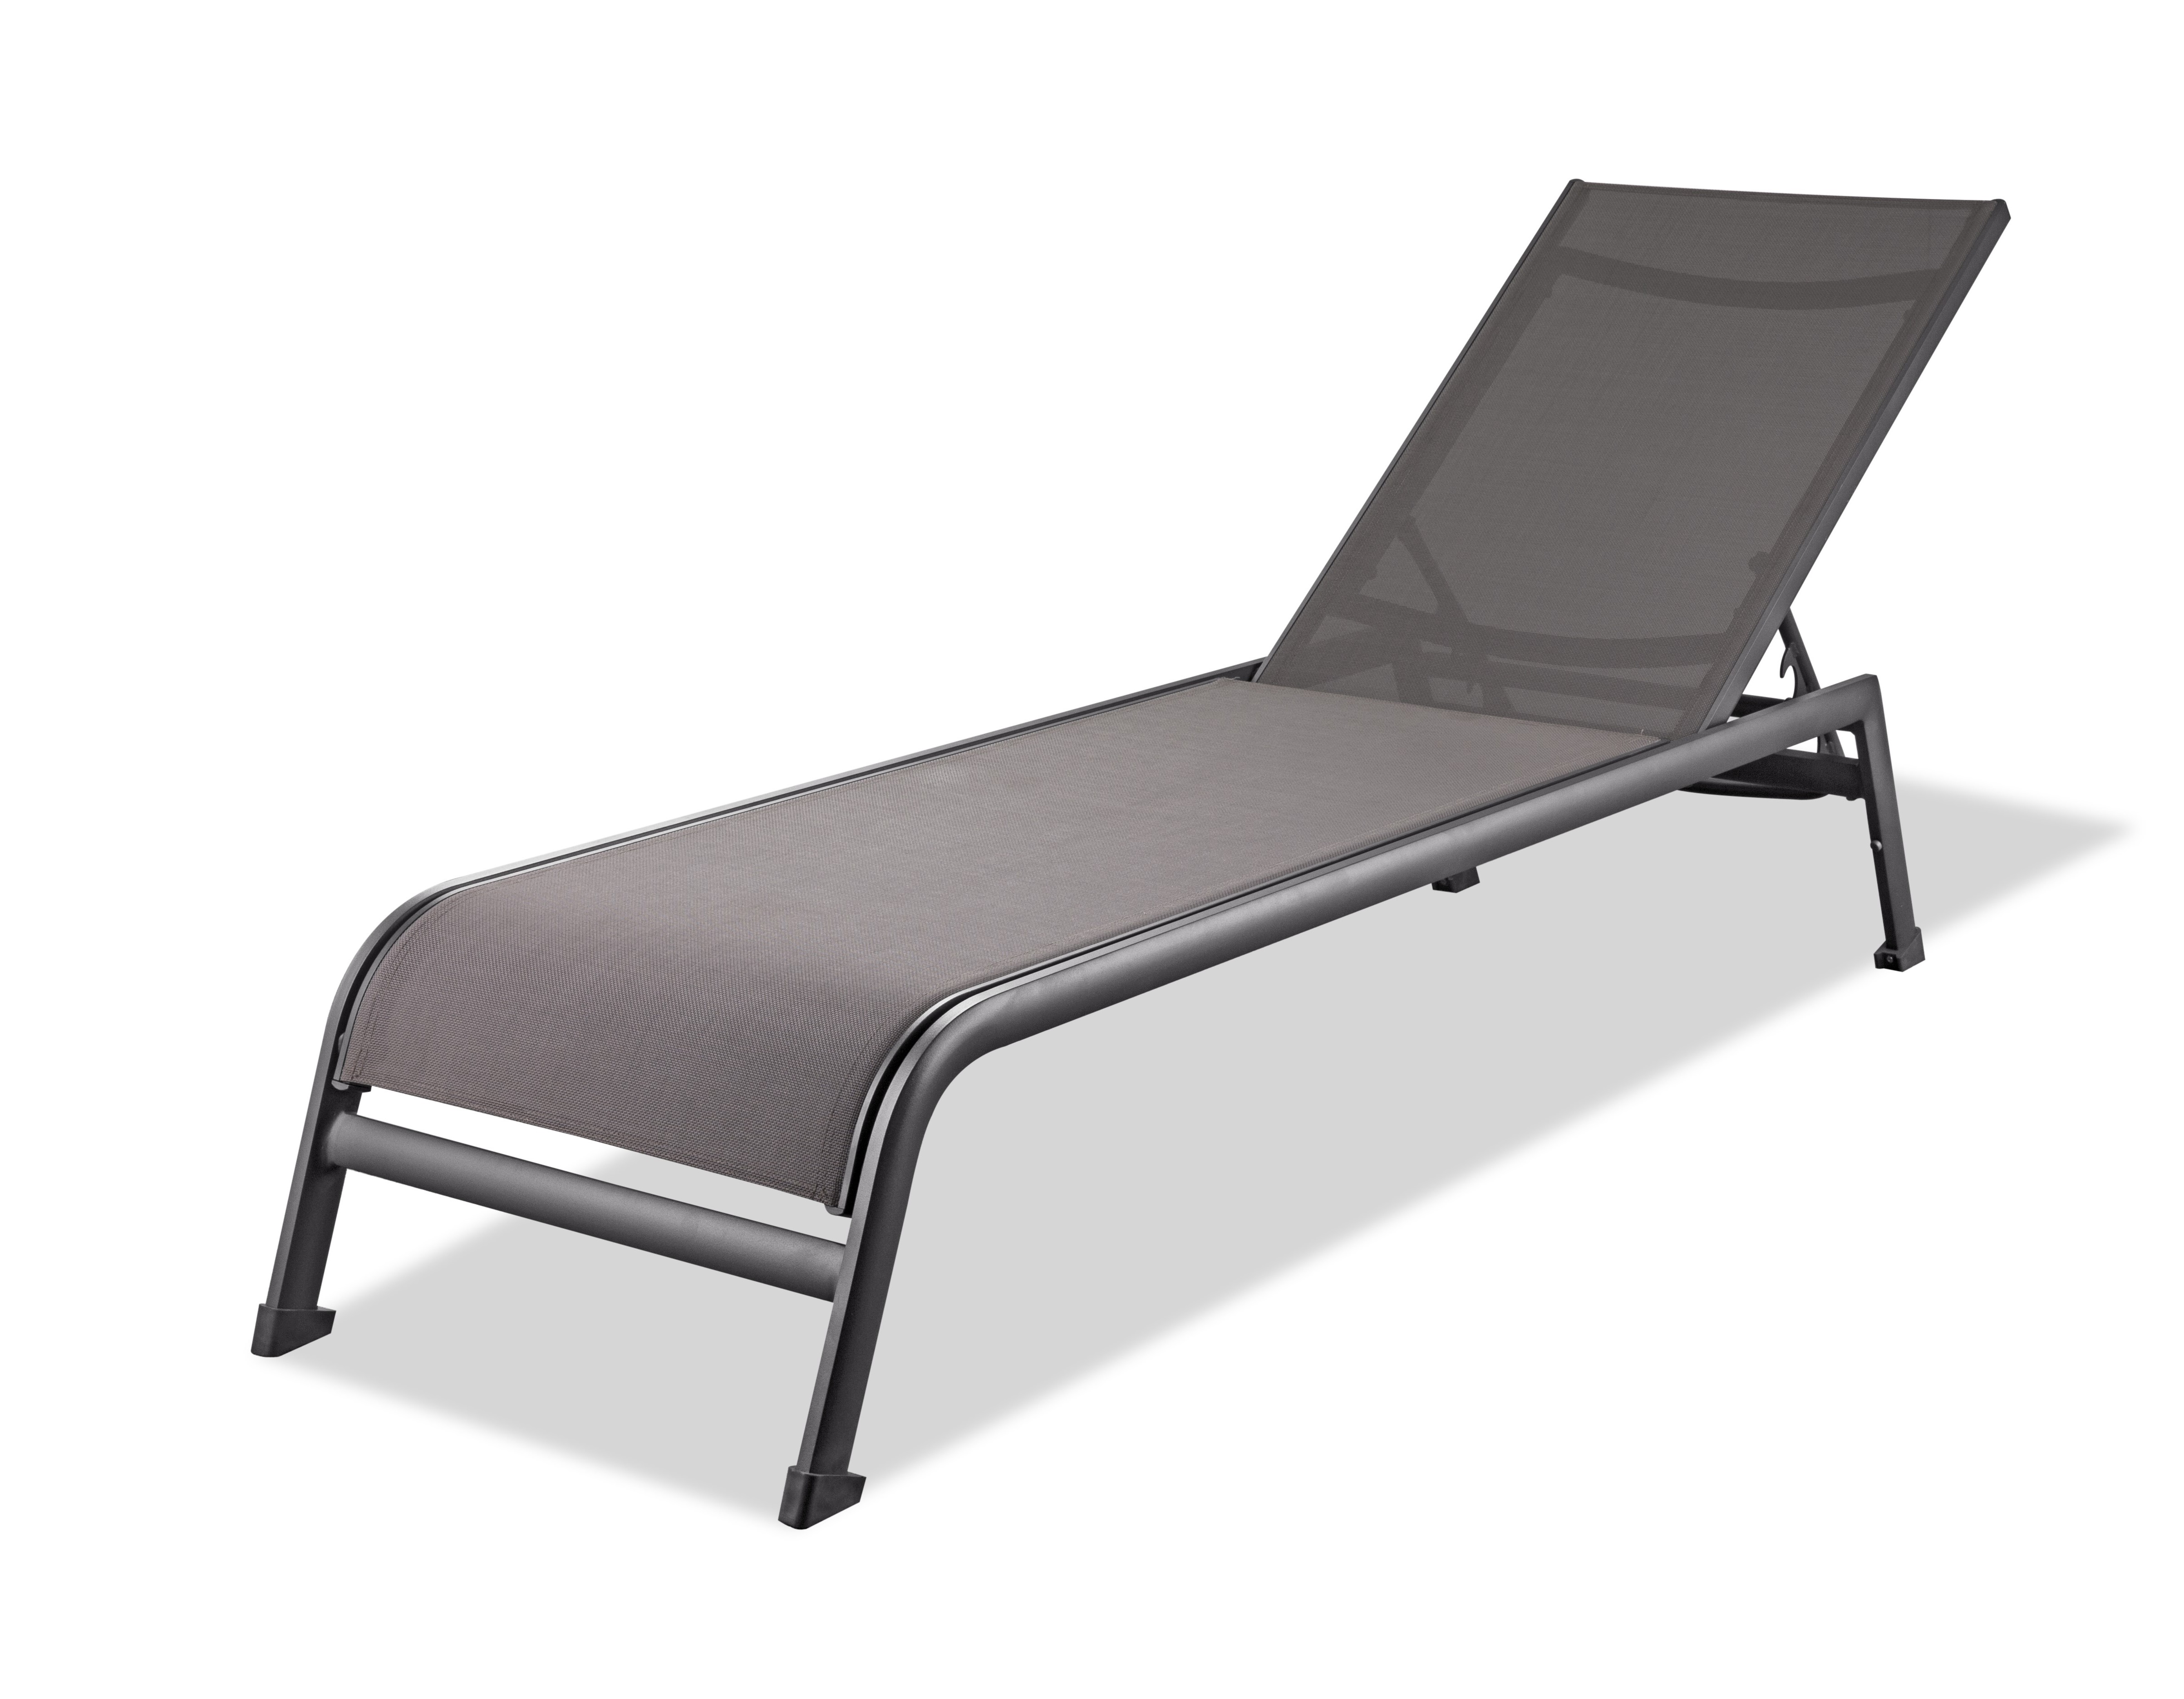 Sunset Outdoor Chaise Lounge Grey | Whiteline